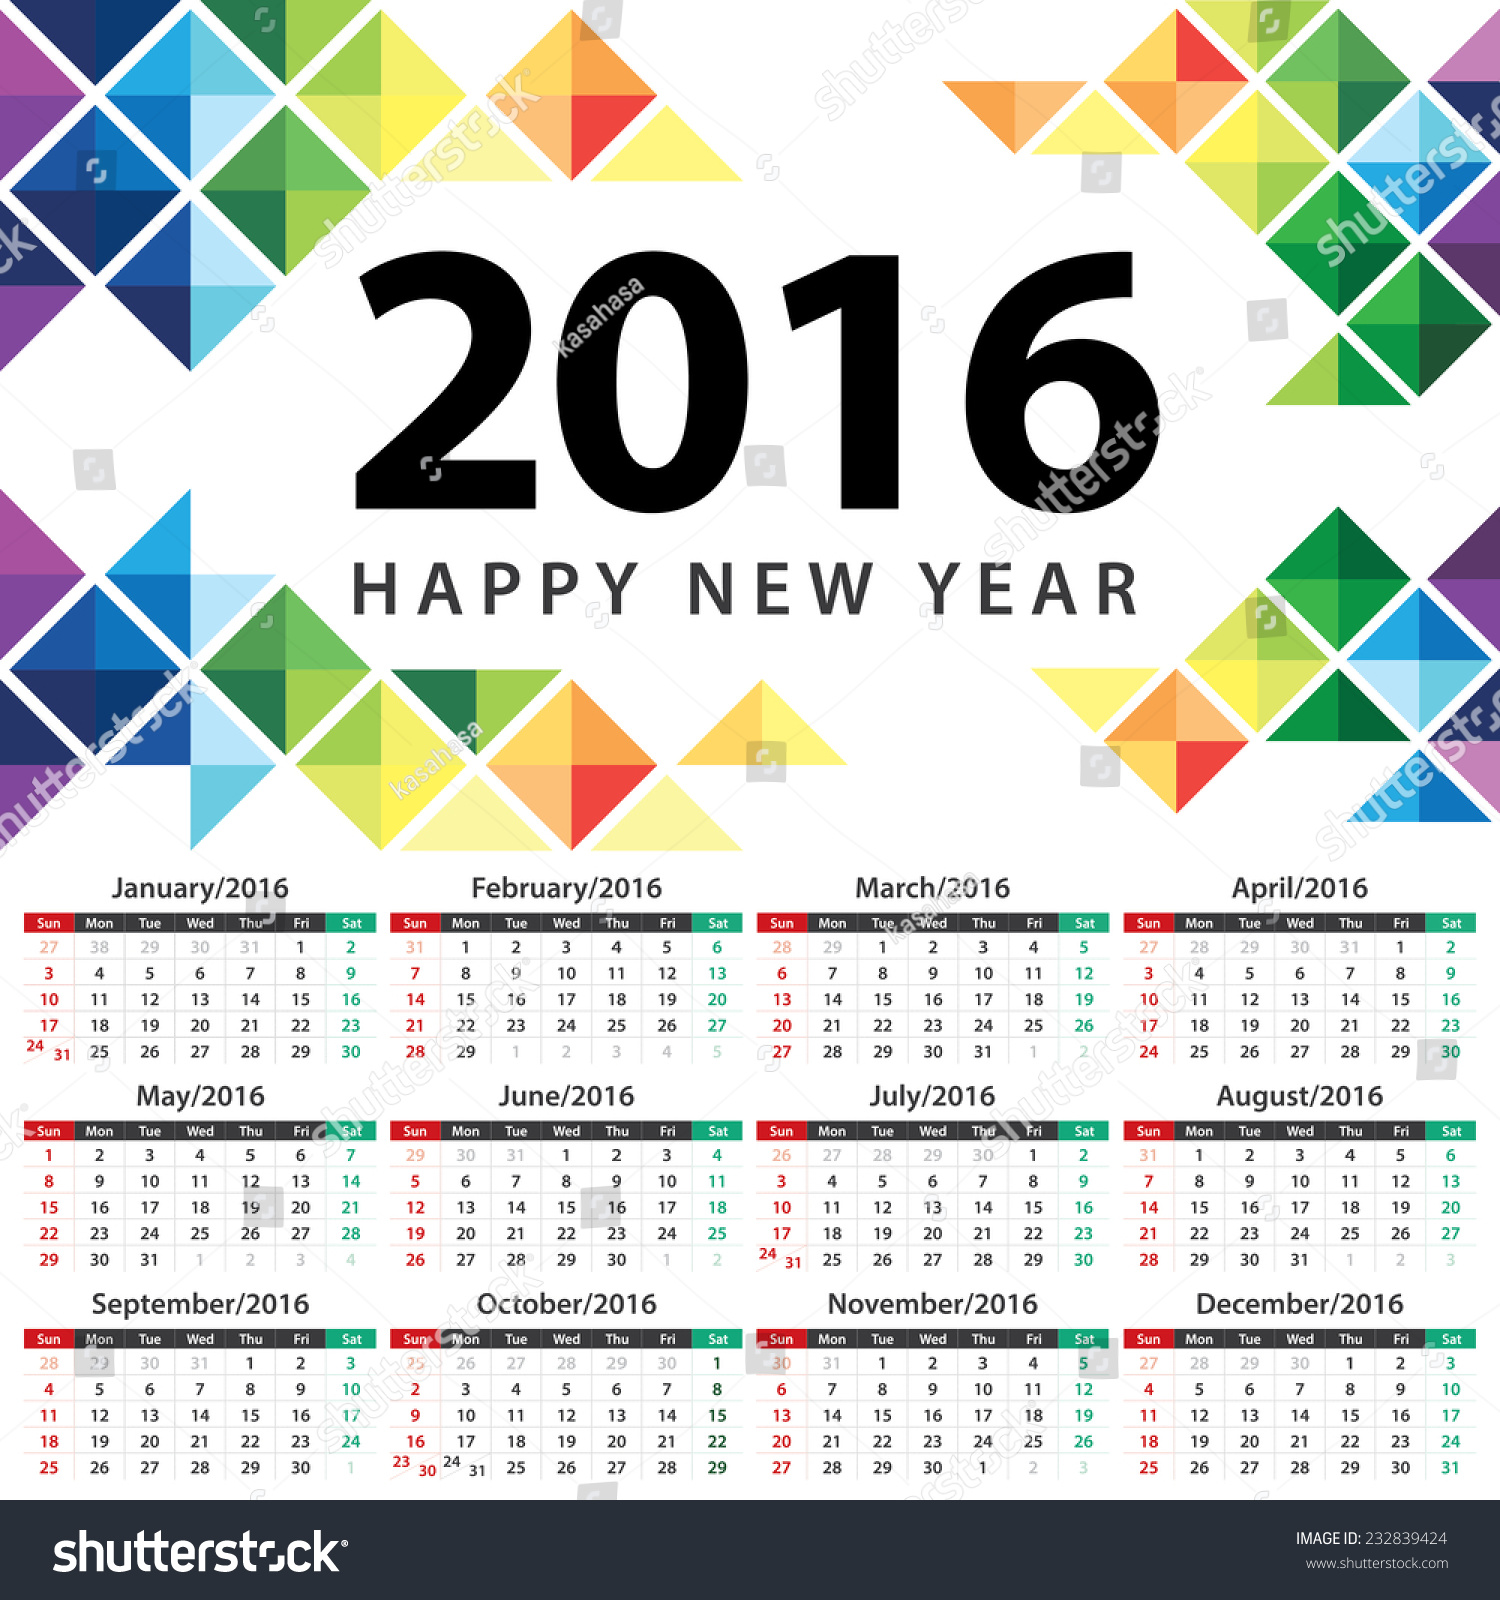 Calendar Illustration Vector : Calendar vector illustration abstract triangle stock